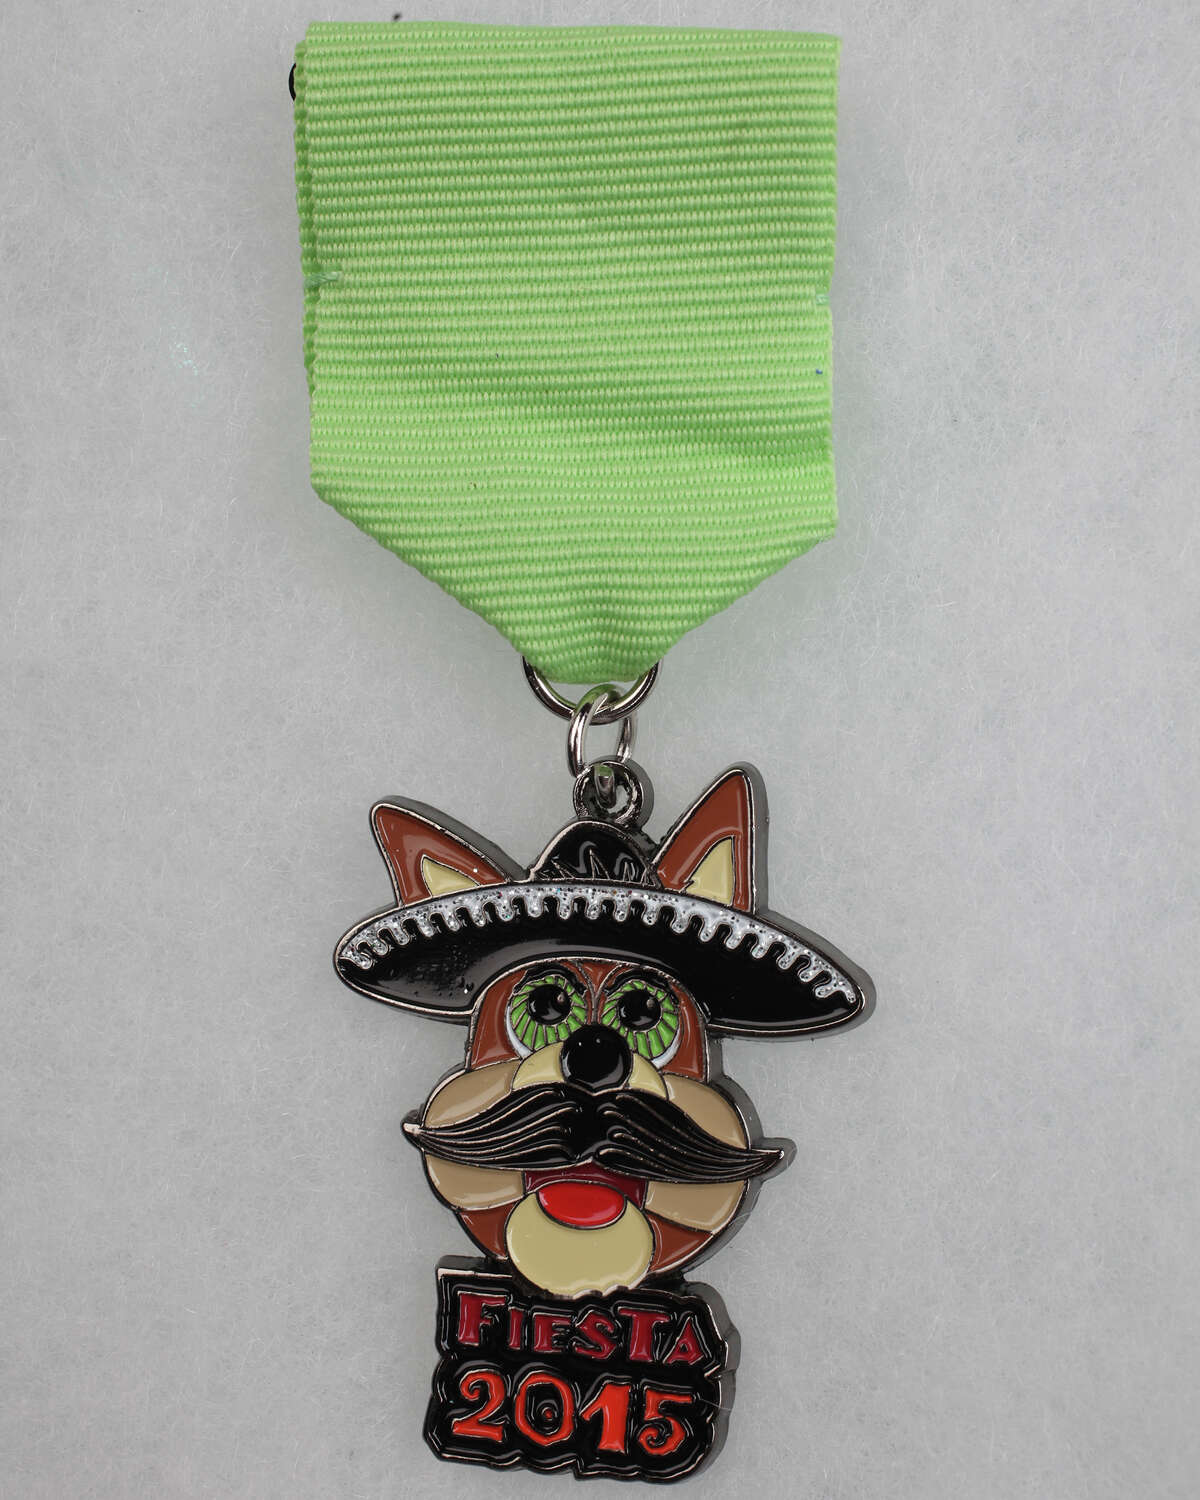 The Spurs Coyote is out front on the 2015 Silver & Black Give Back Fiesta Medal. The $10 medal has been sold at San Antonio Spurs' home games since March 20. All proceeds will go to the nonprofit organization's youth programs such as Team Up Challenge and the Spurs Youth Basketball League.